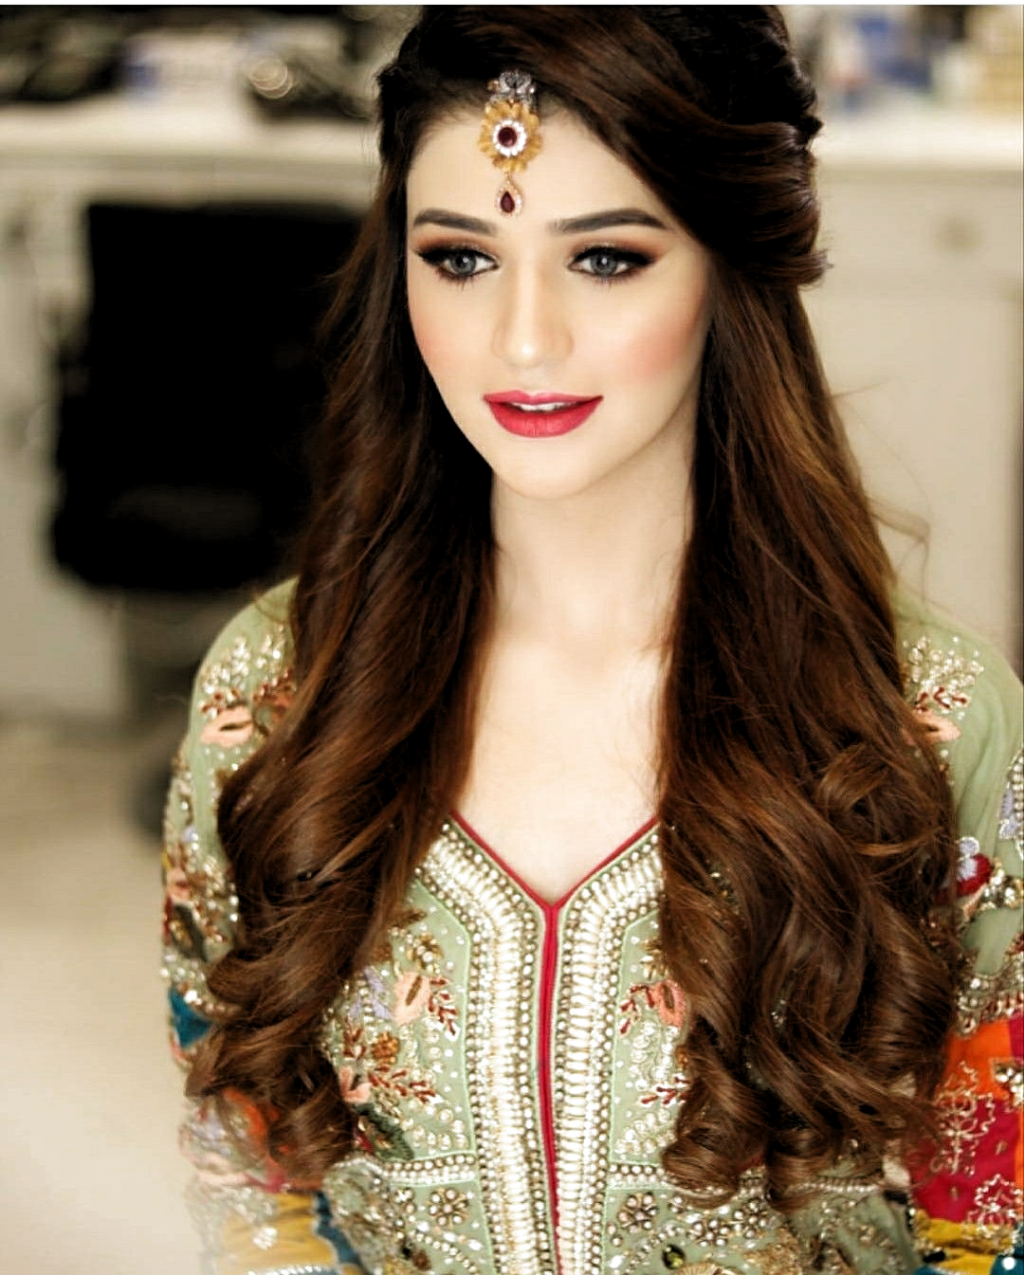 Nice Weddinghairstyles At Hairstyles For Wedding Pakistan From Gallery Si In 2020 Pakistani Bridal Hairstyles Bridal Hairstyle Indian Wedding Pakistani Bridal Makeup